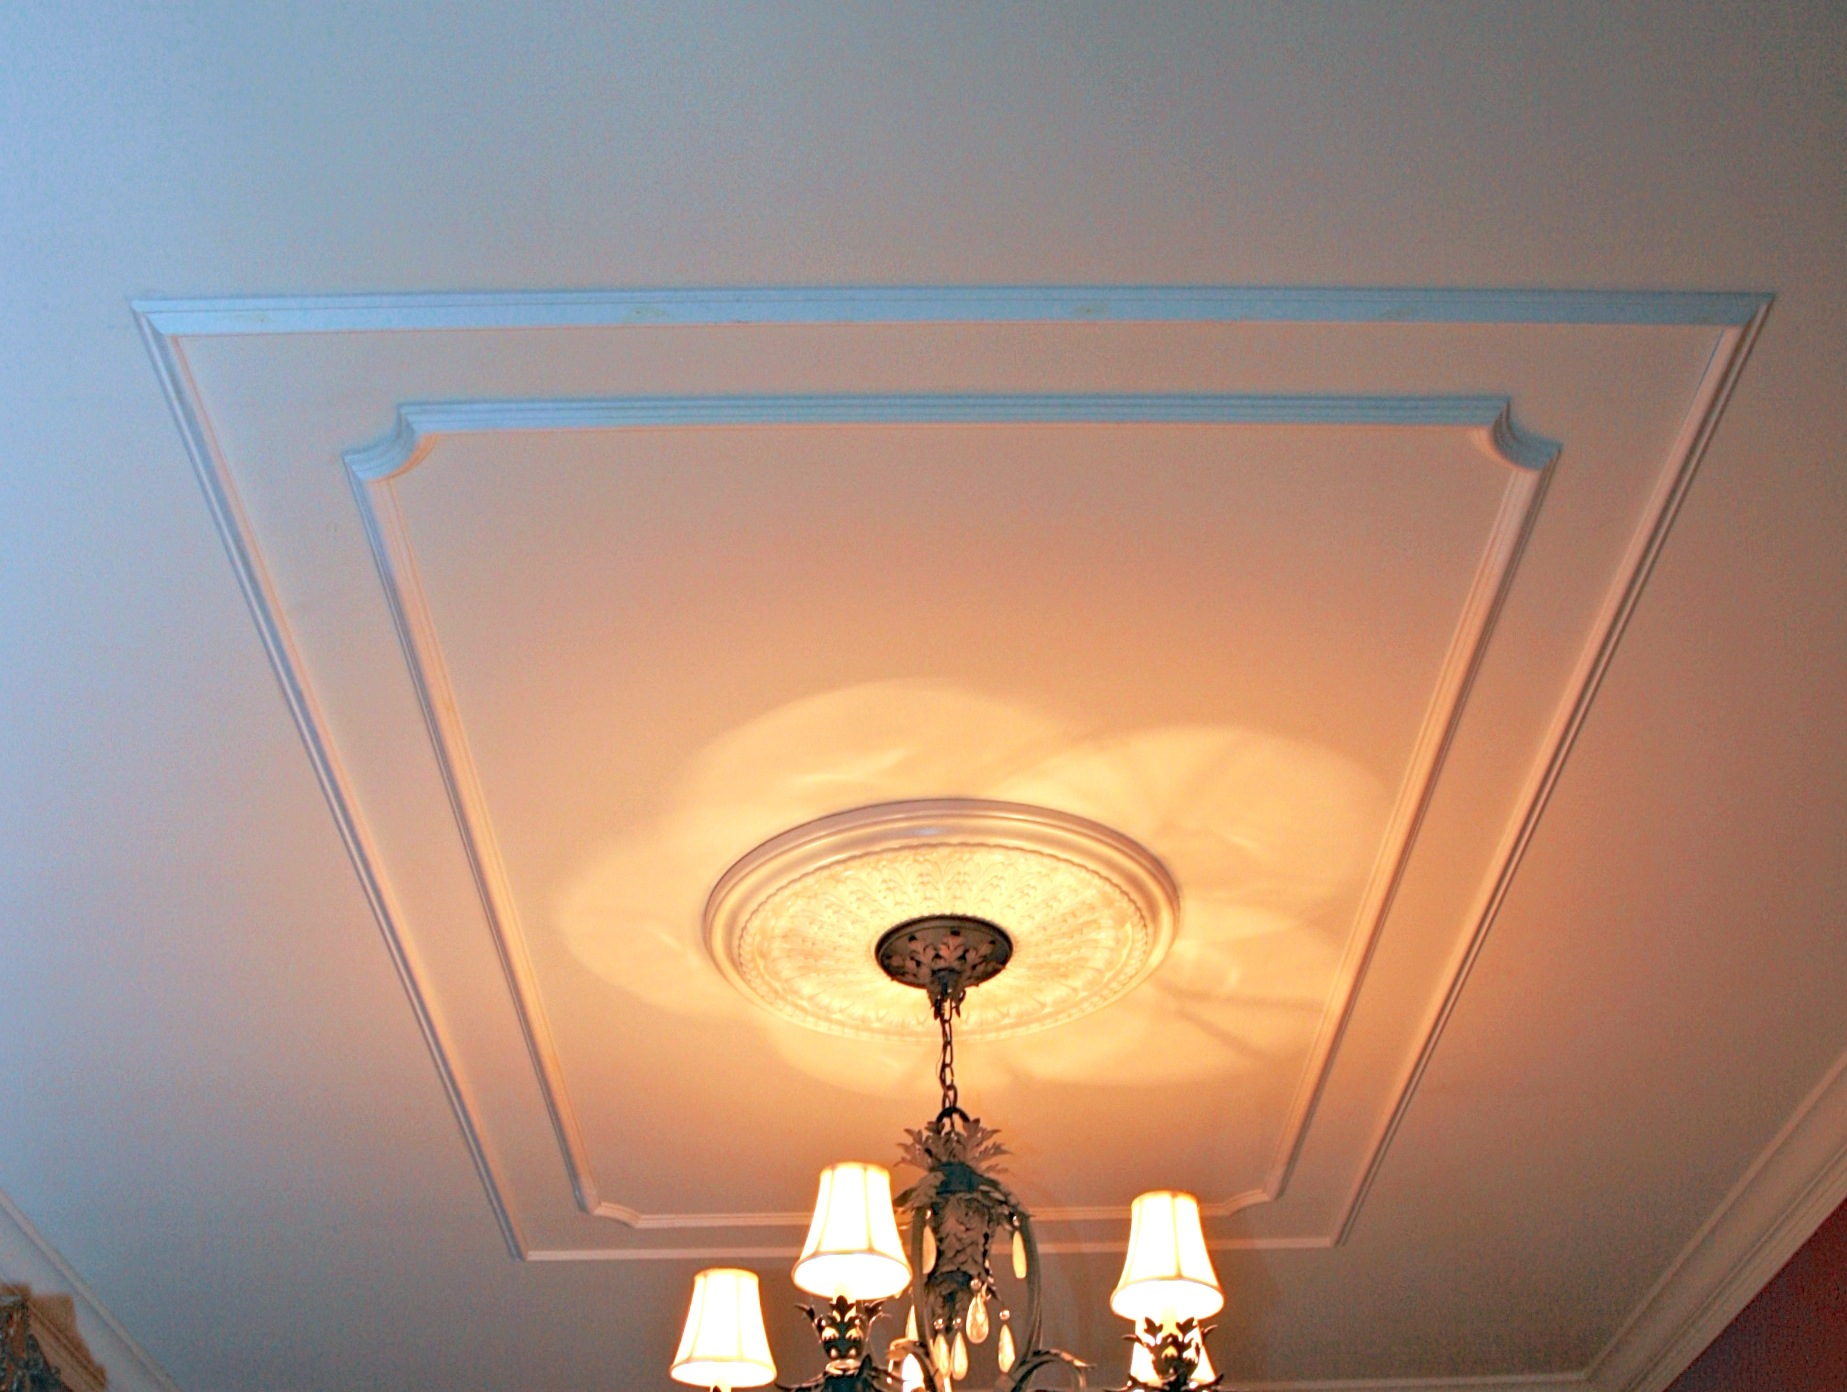 Decorative Ceilings By Deacon Home Enhancement